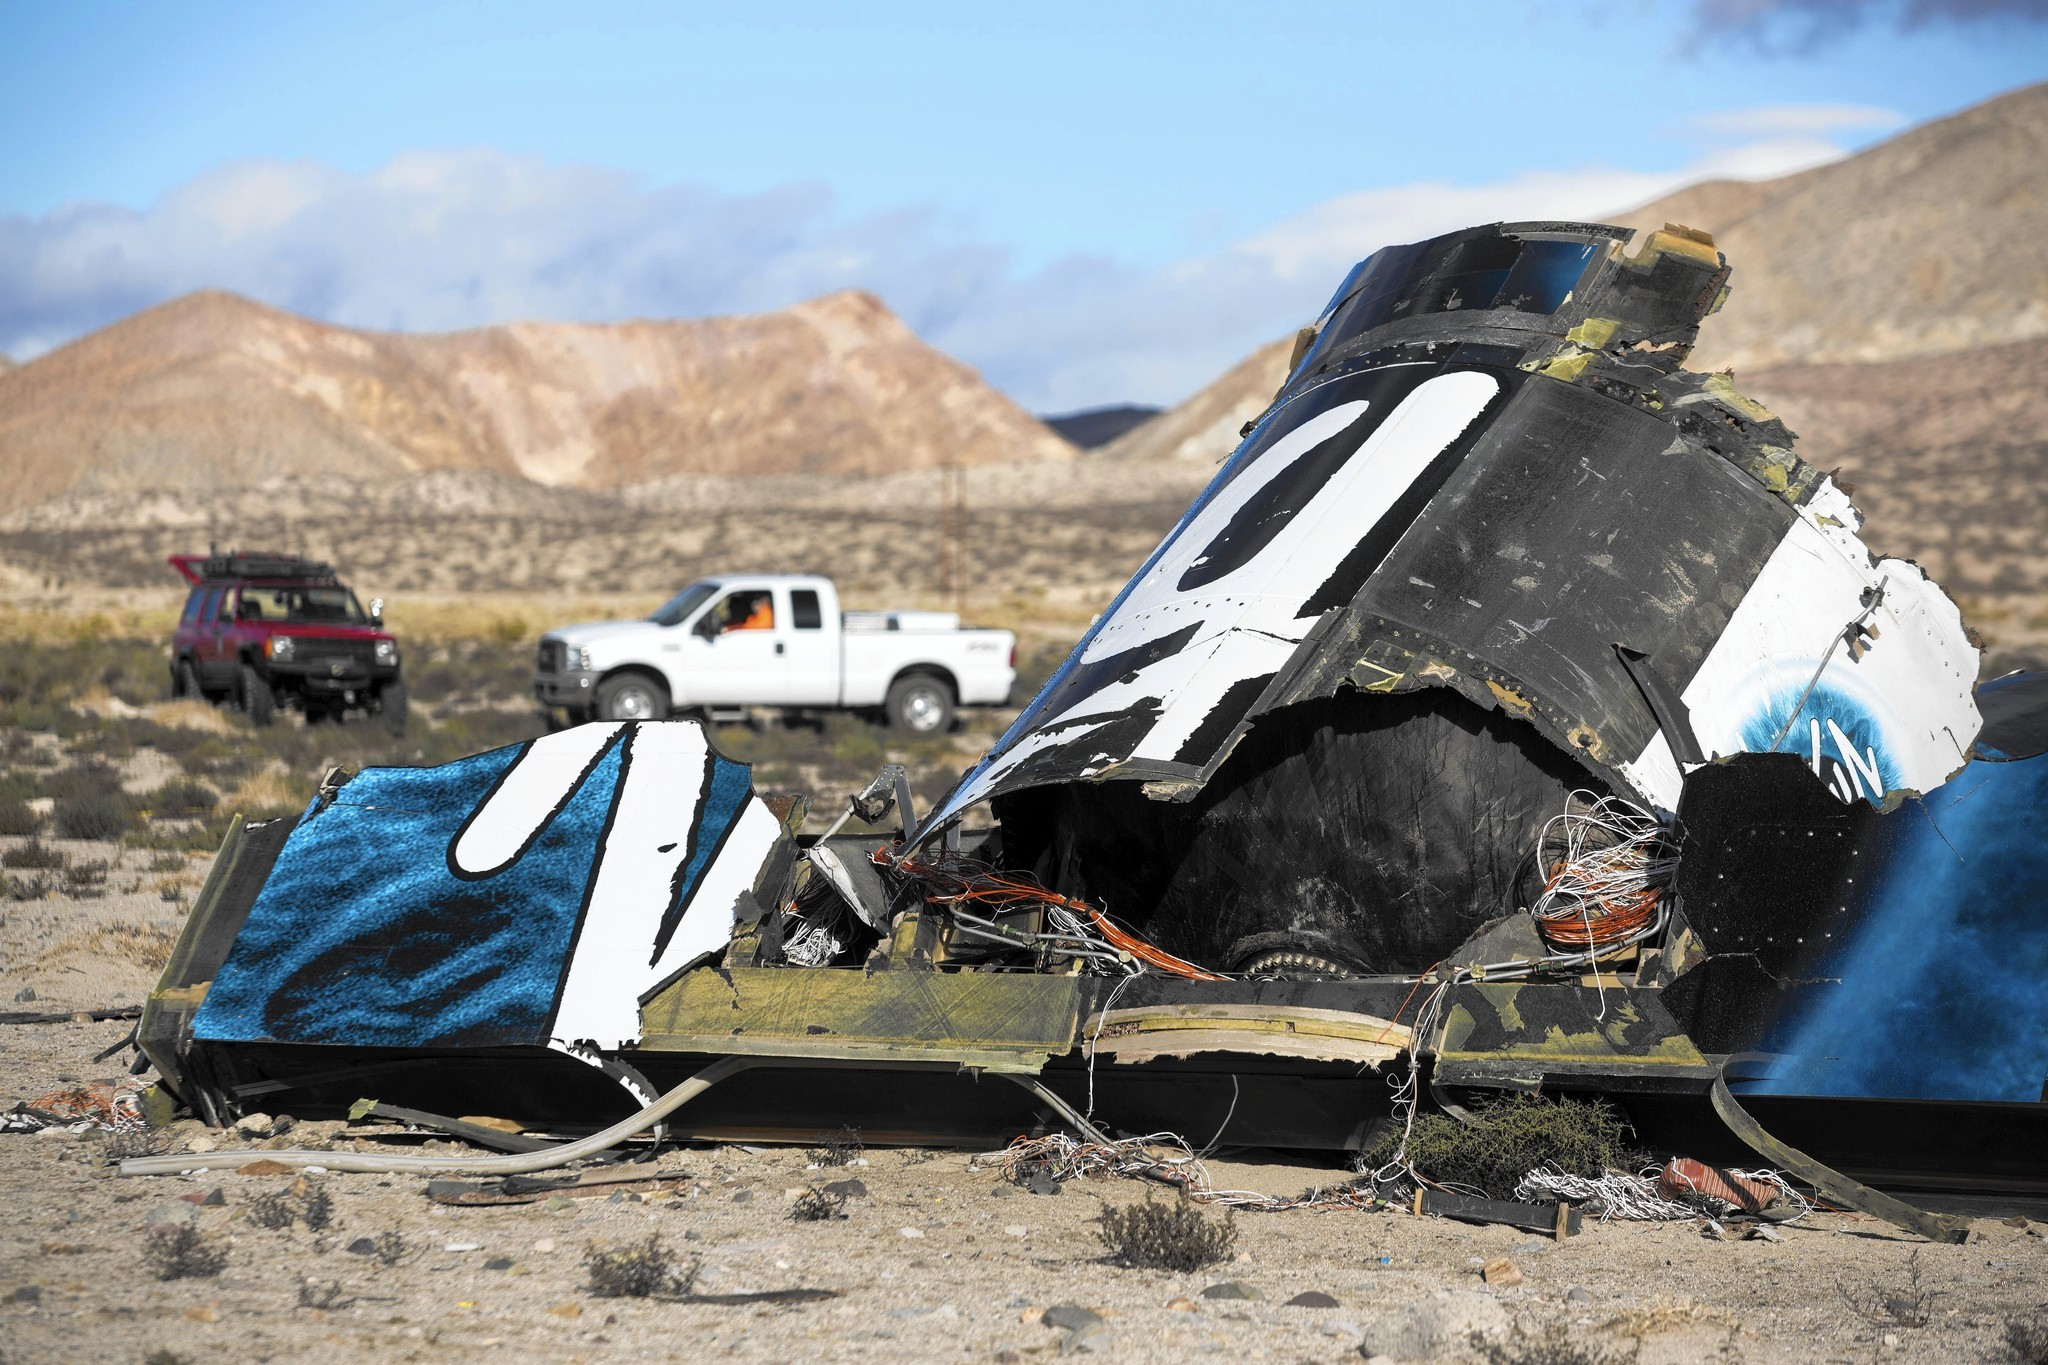 spacecraft crash - photo #1